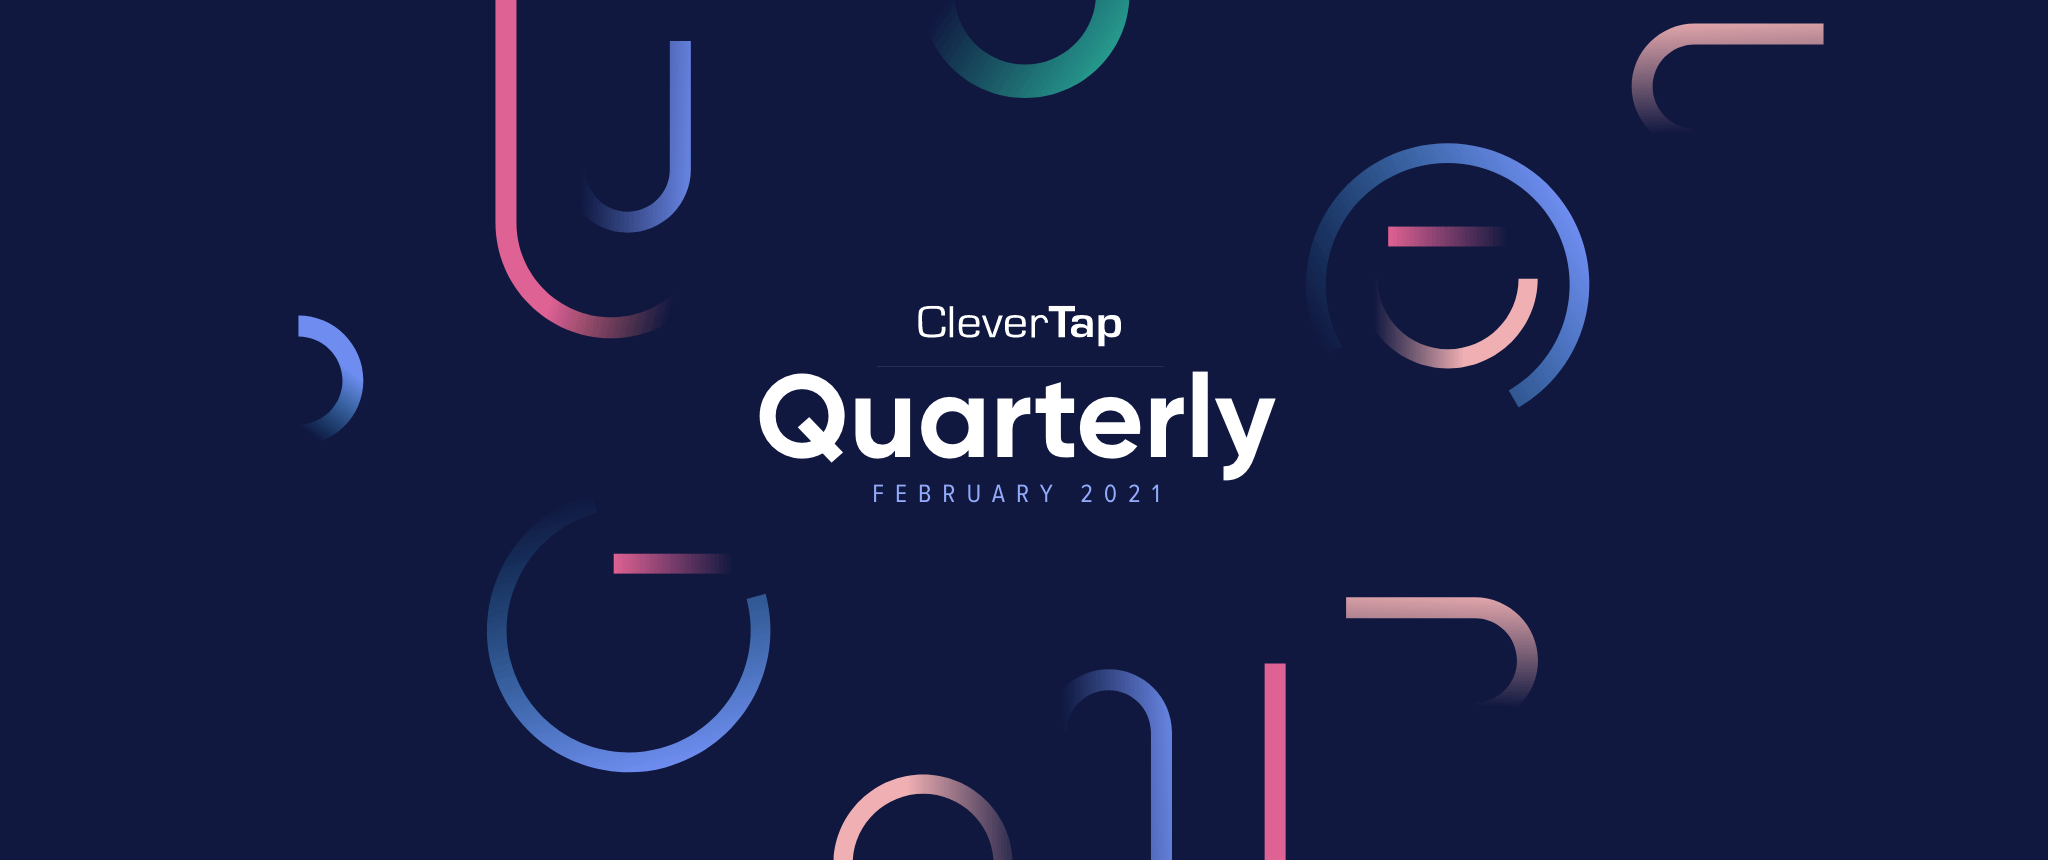 CleverTap Quarterly: Driven by Speed and Simplicity